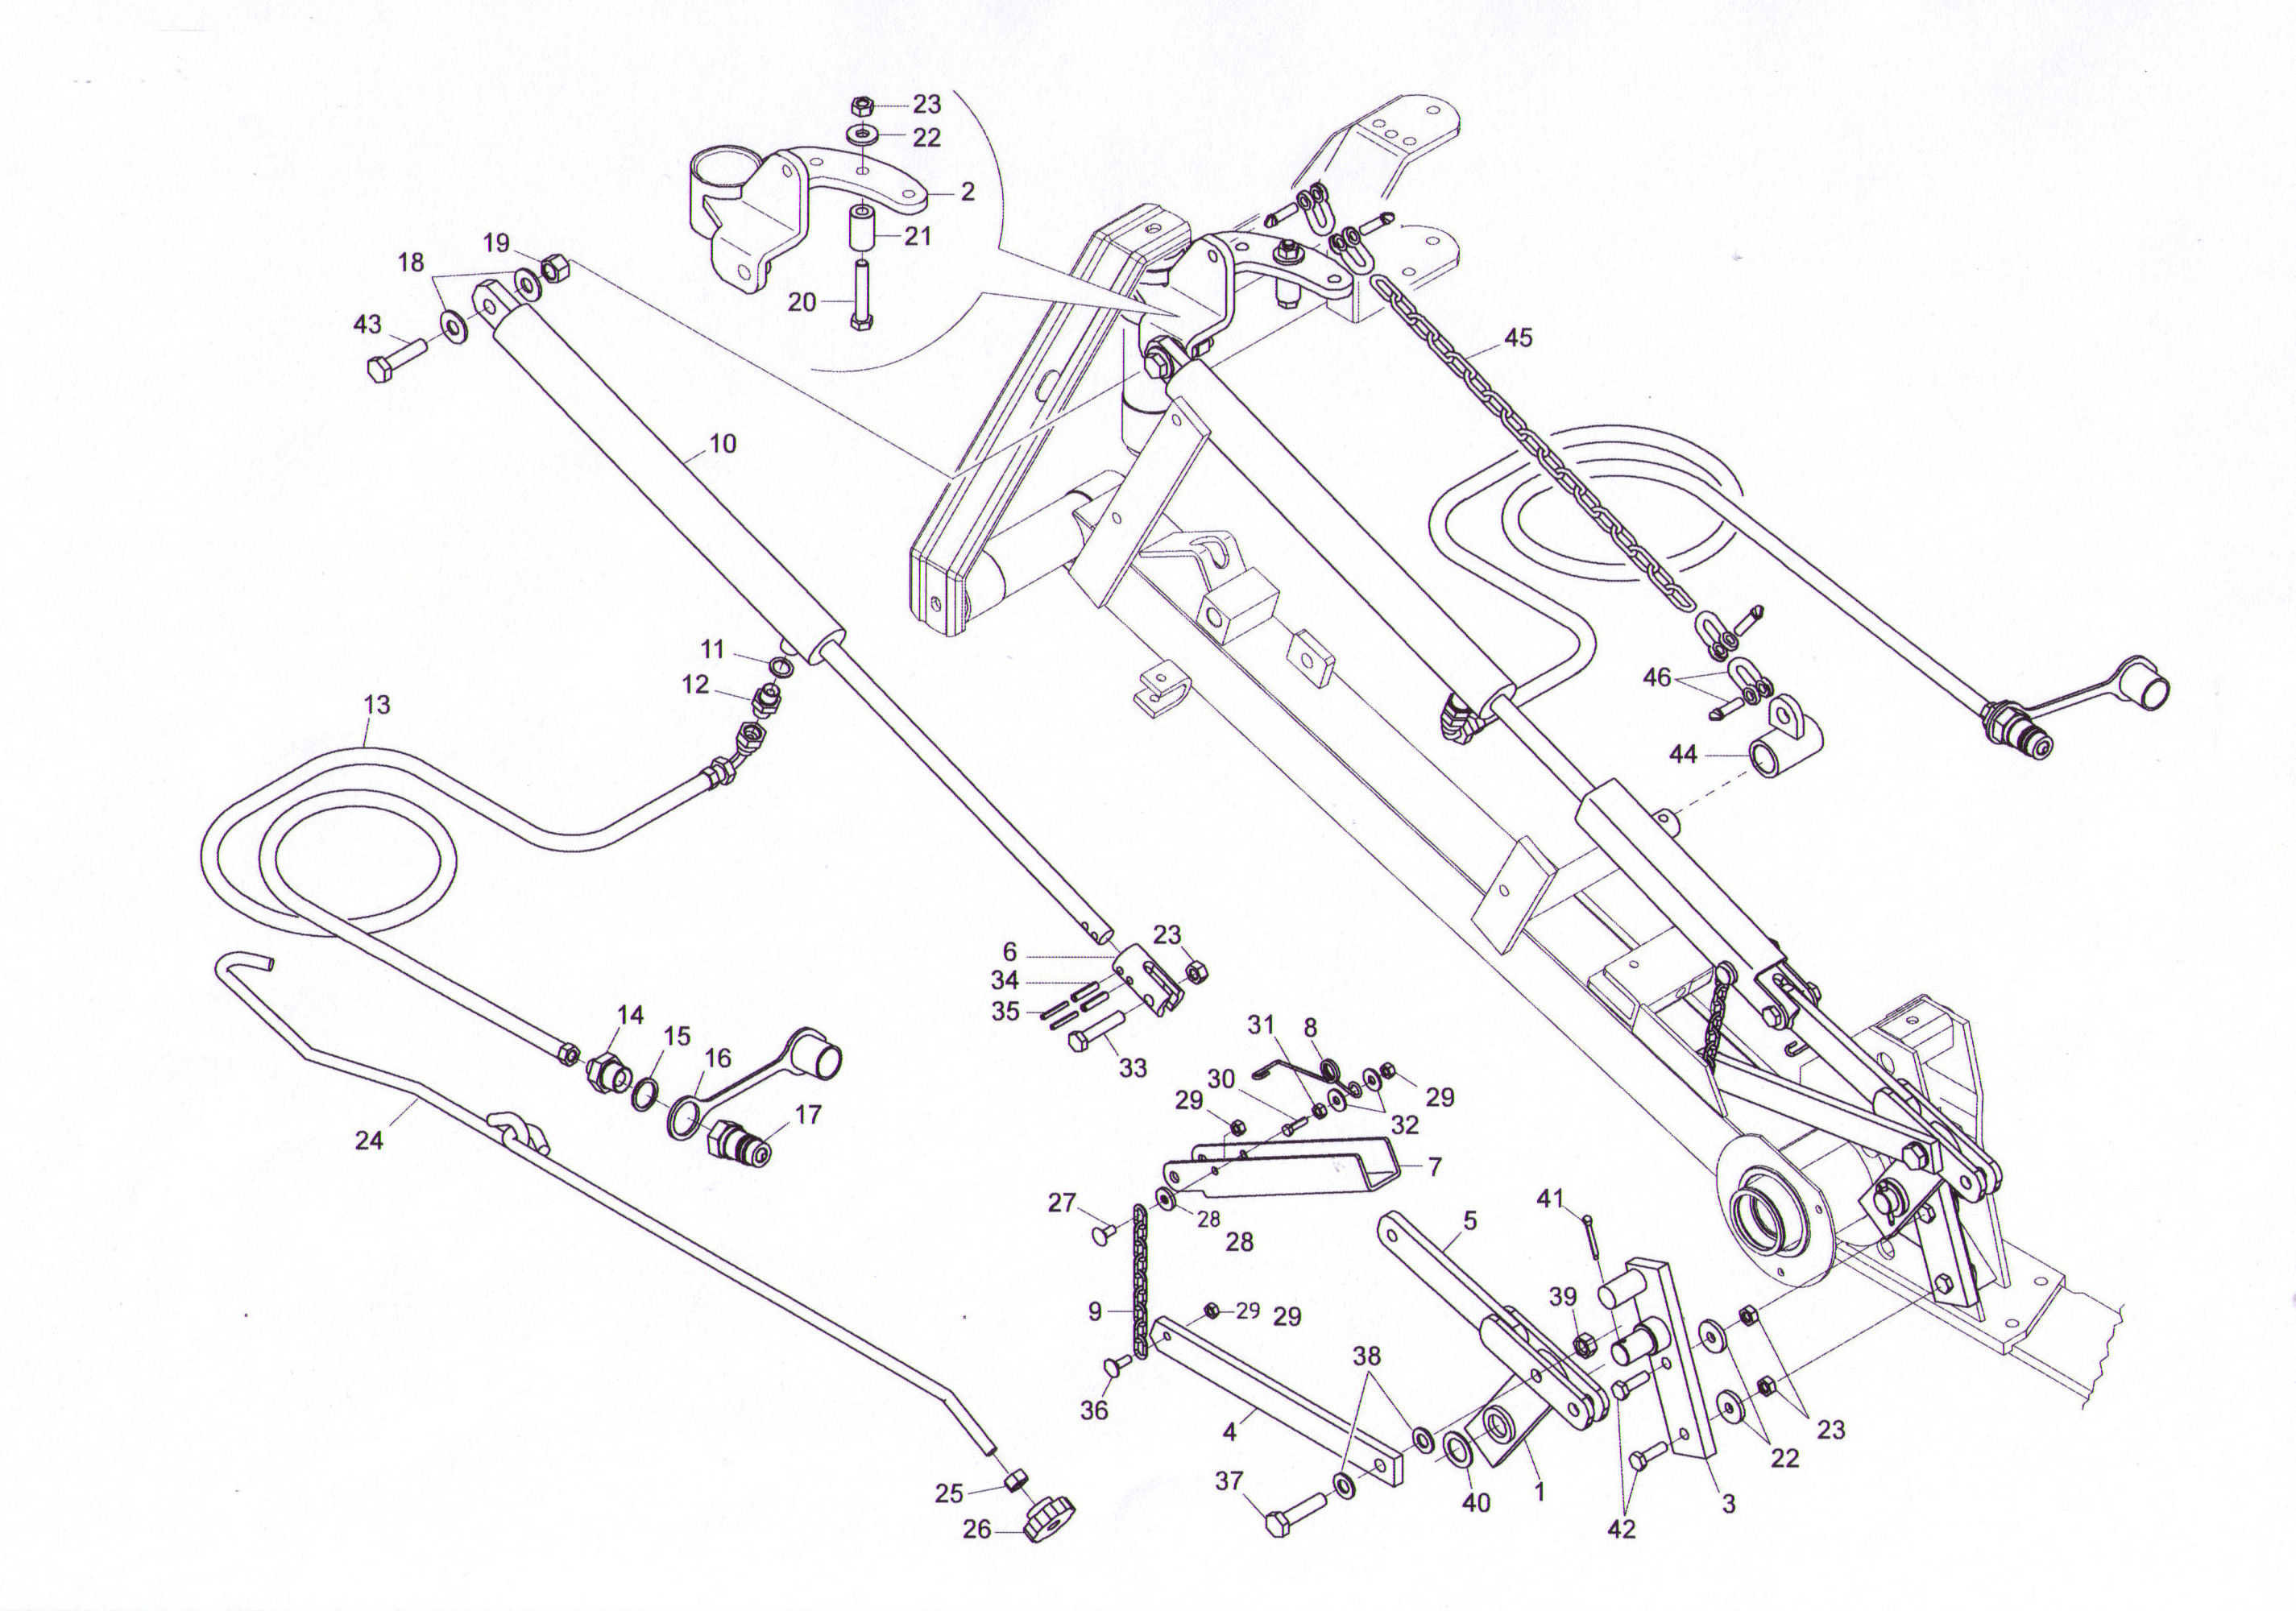 Kuhn Parts Diagrams Wiring And Engine Diagram